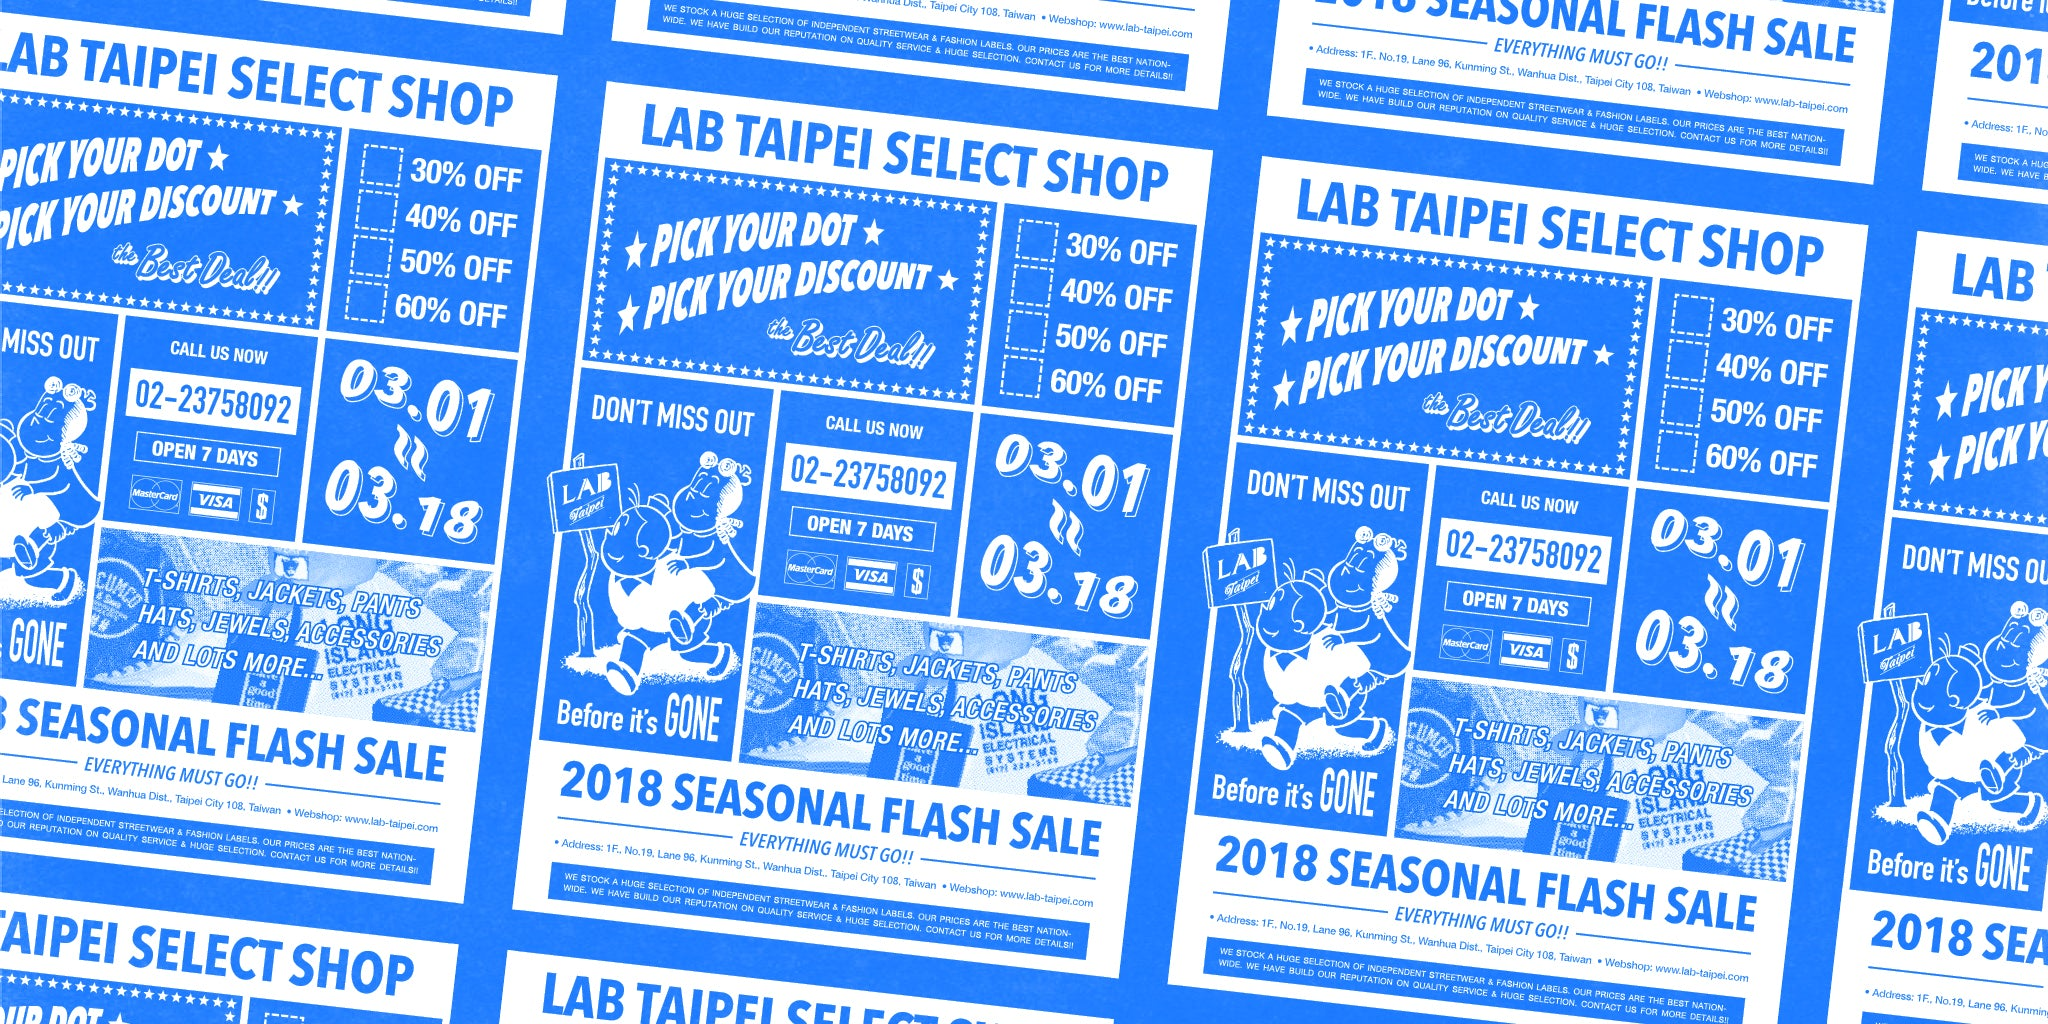 LAB TAIPEI 2018 SEASONAL FLASH SALE